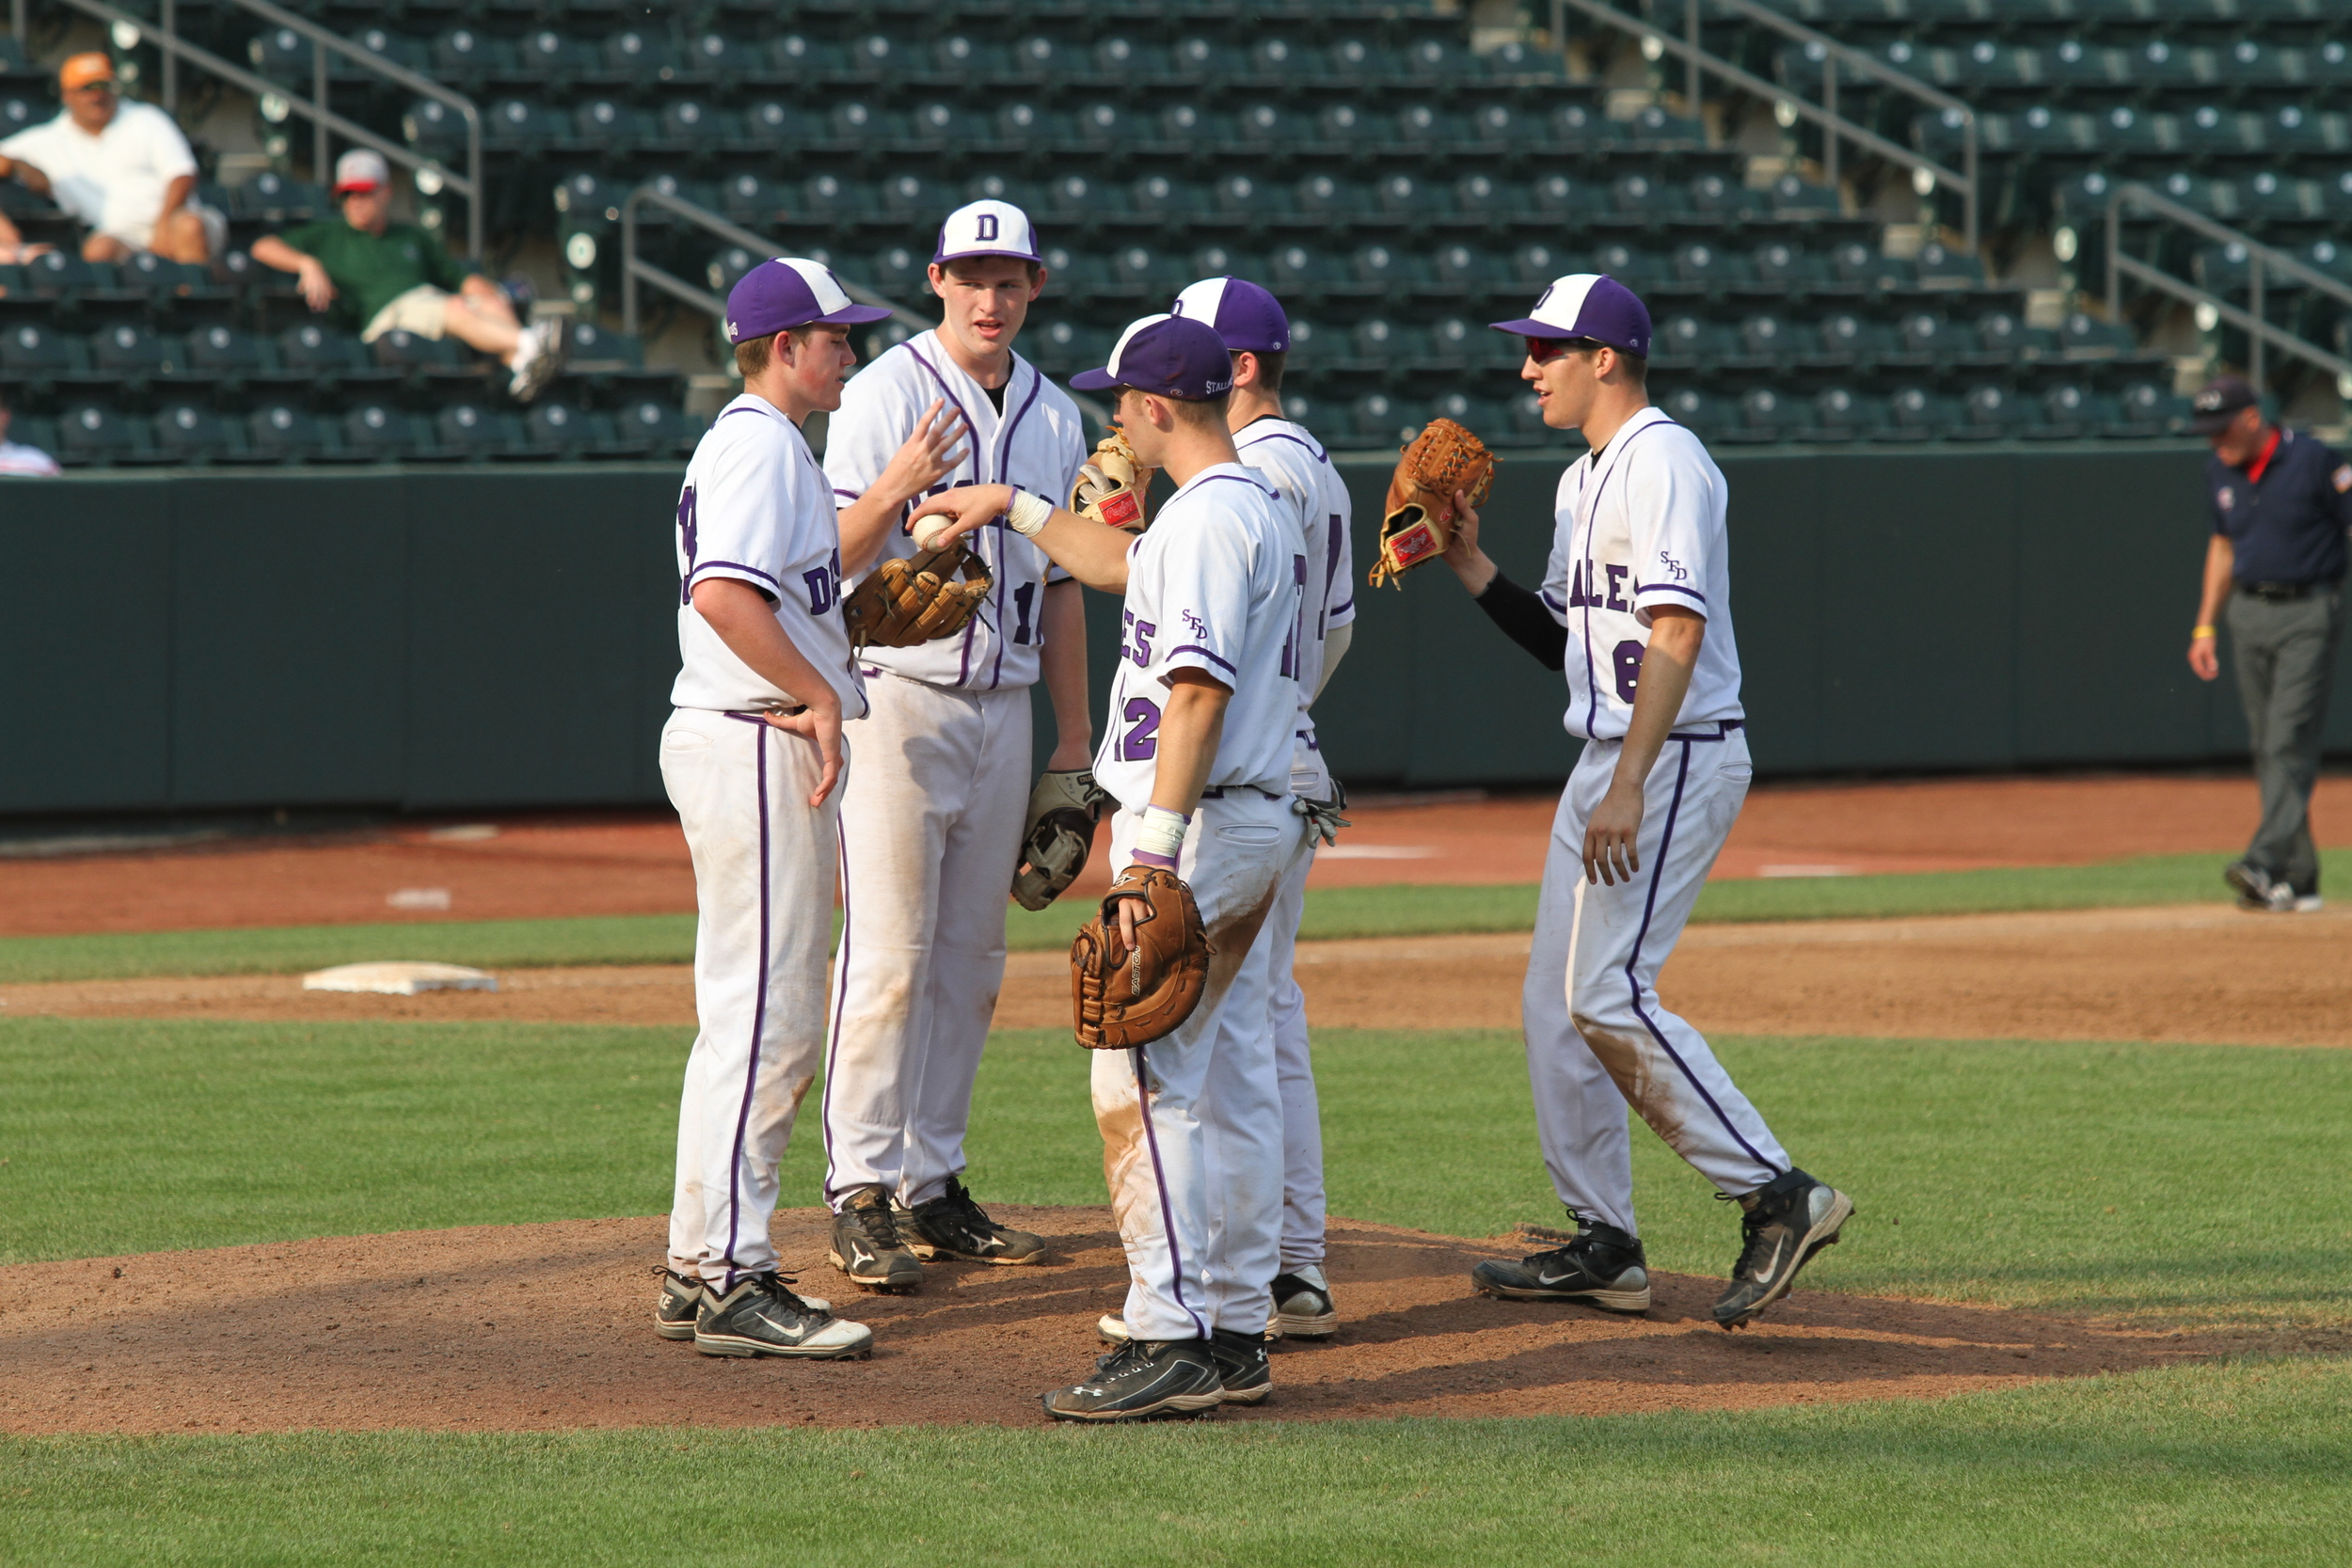 Player meeting at the mound in the title game